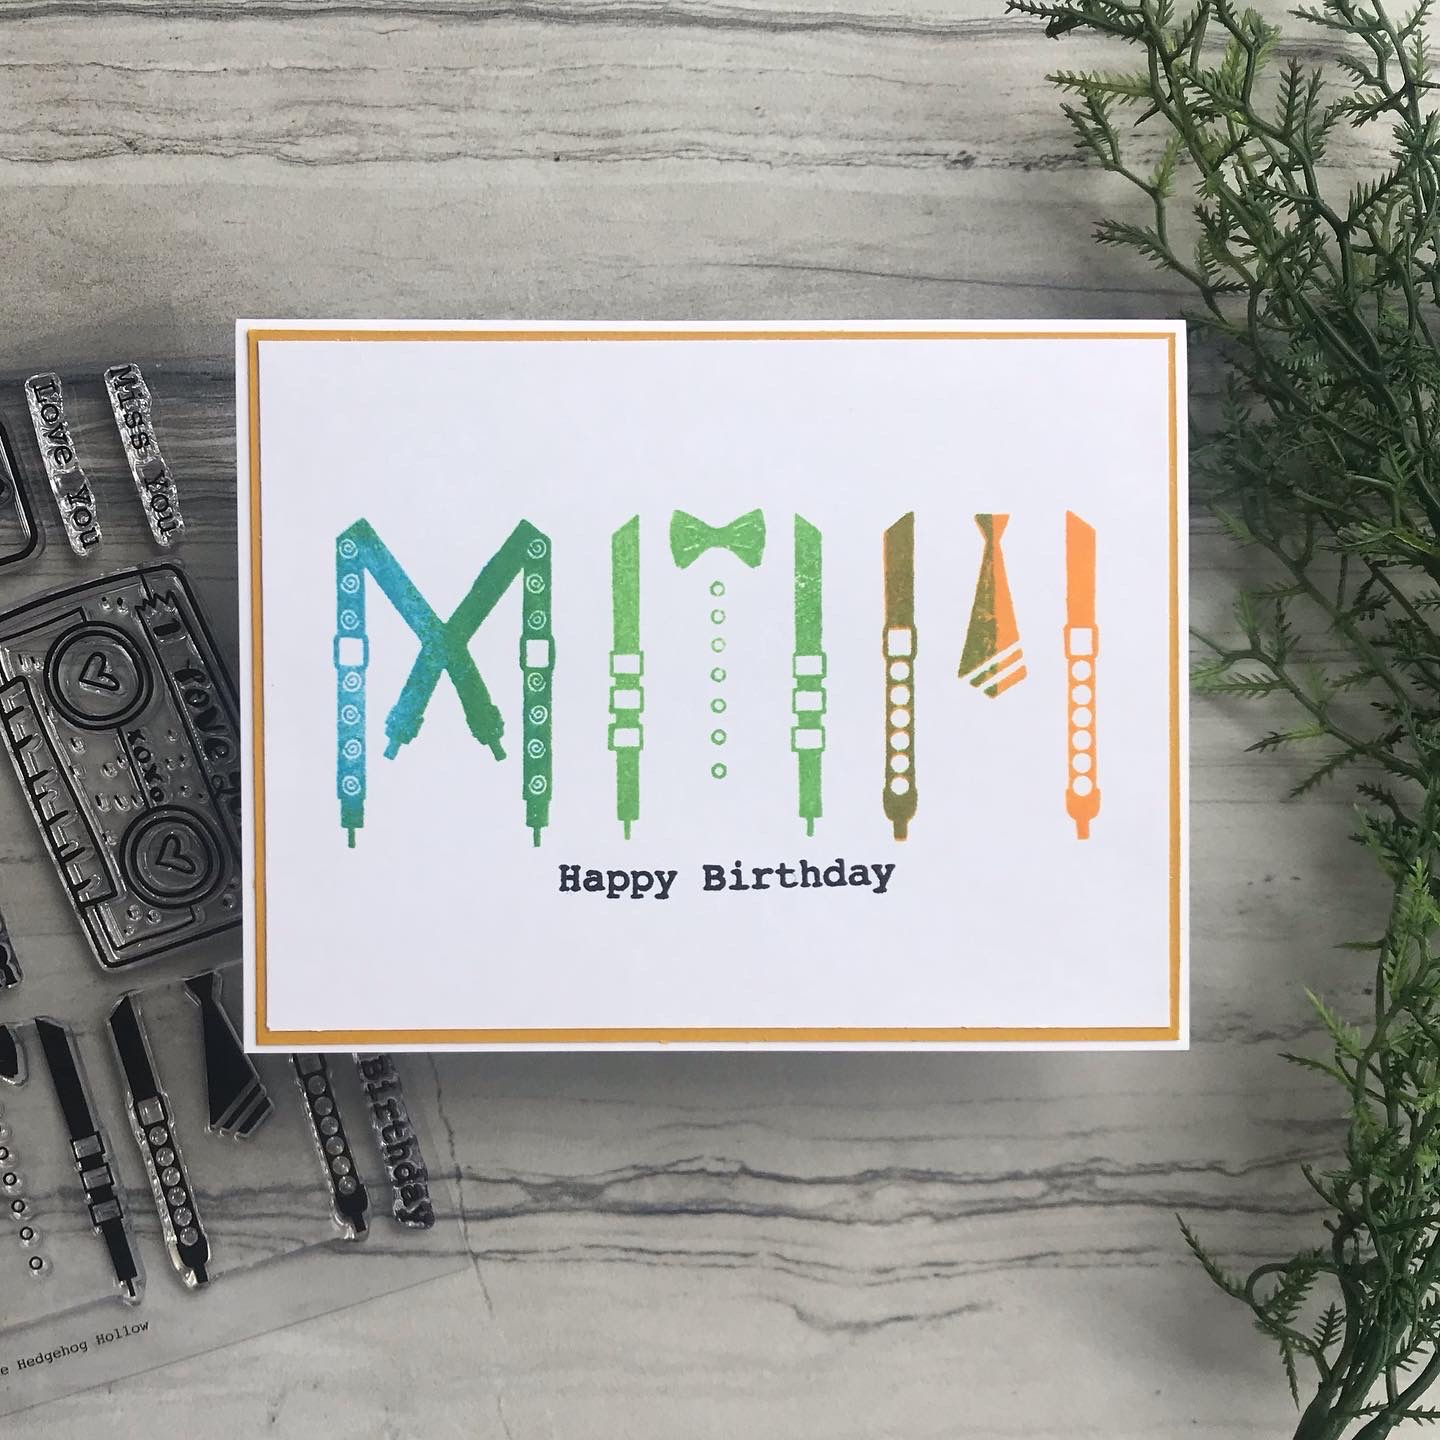 Super Easy Birthday Card!